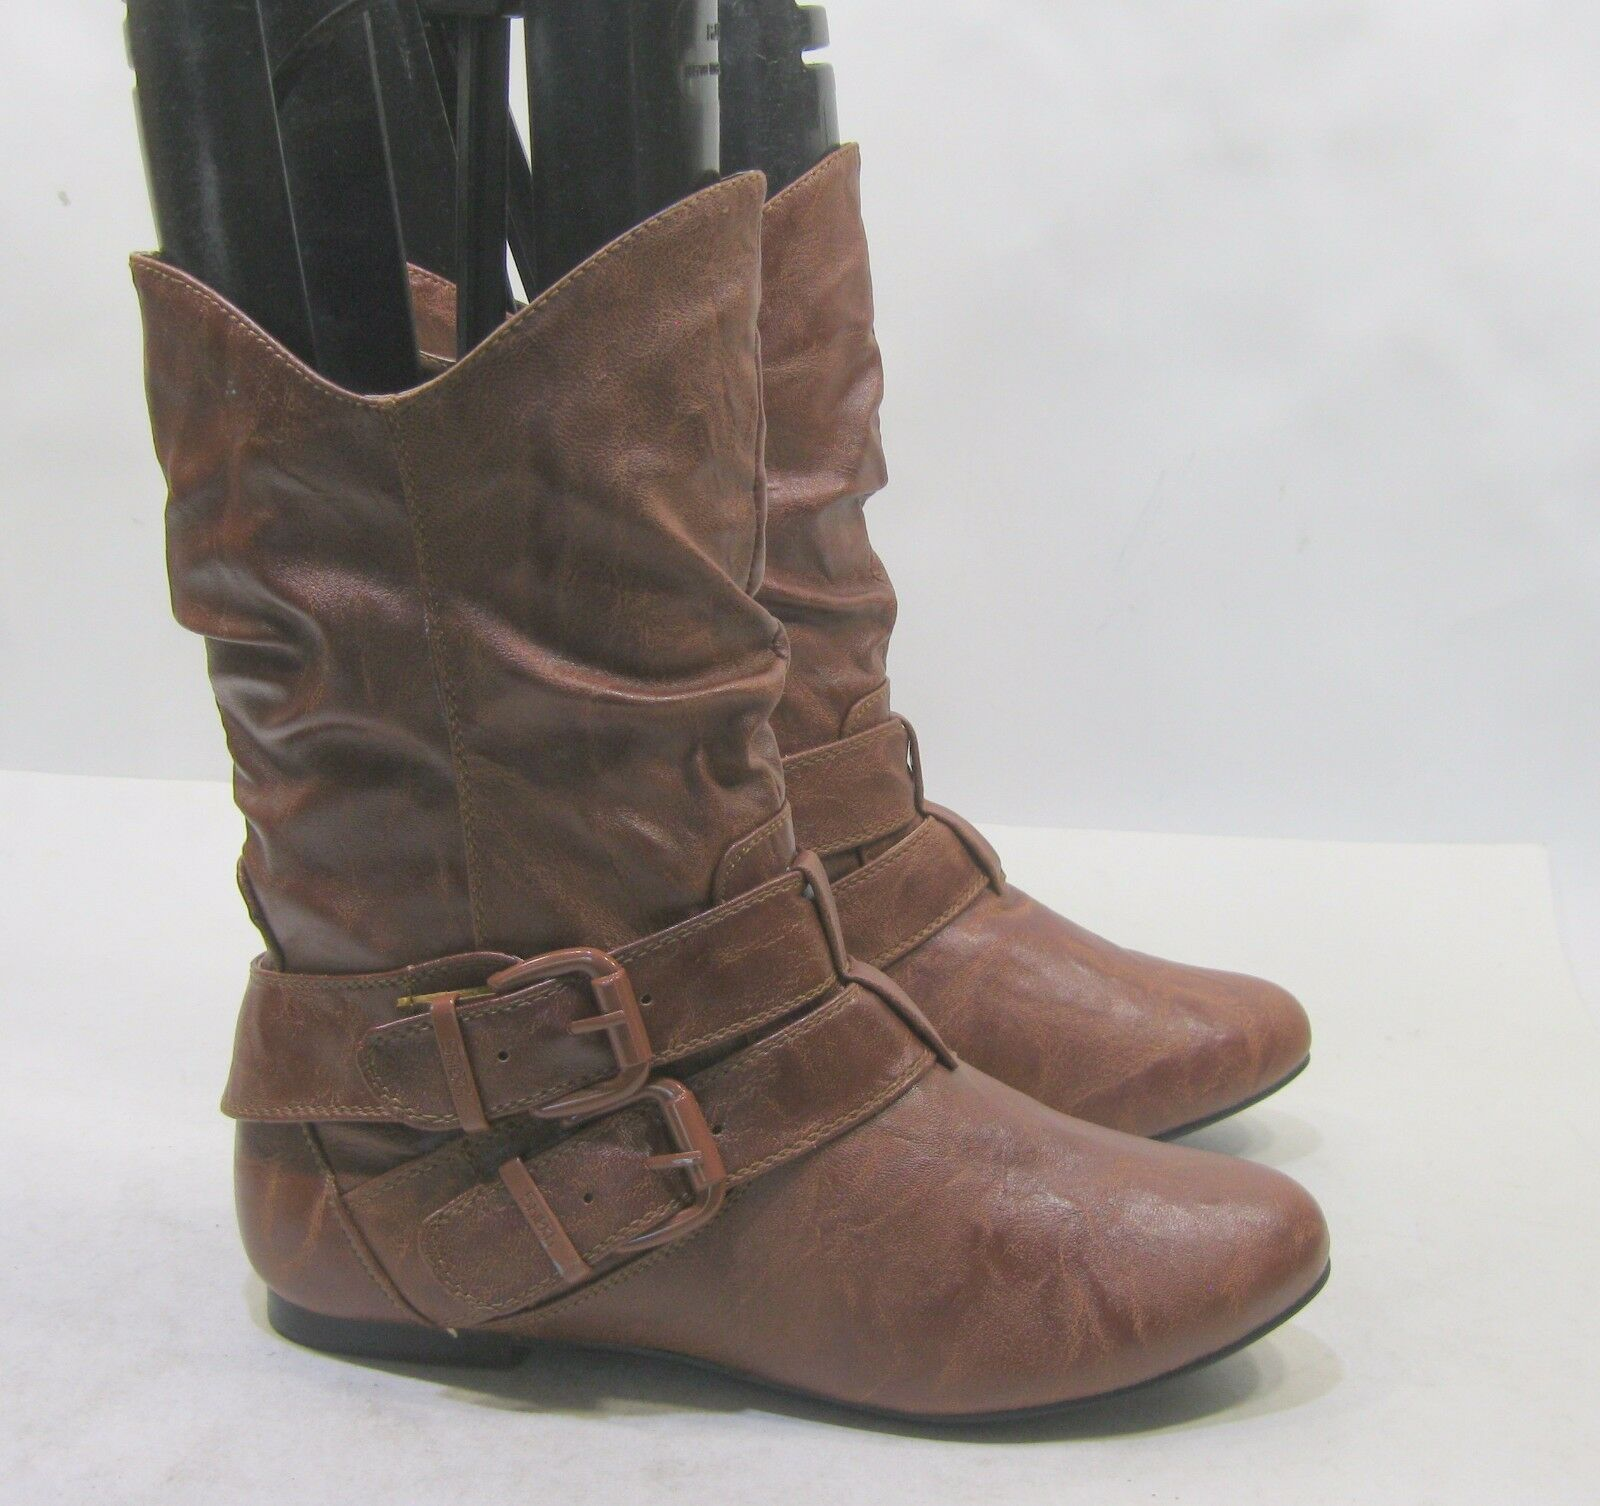 Womens Tan Round Toe Sexy Ankle Boots Size 8.5